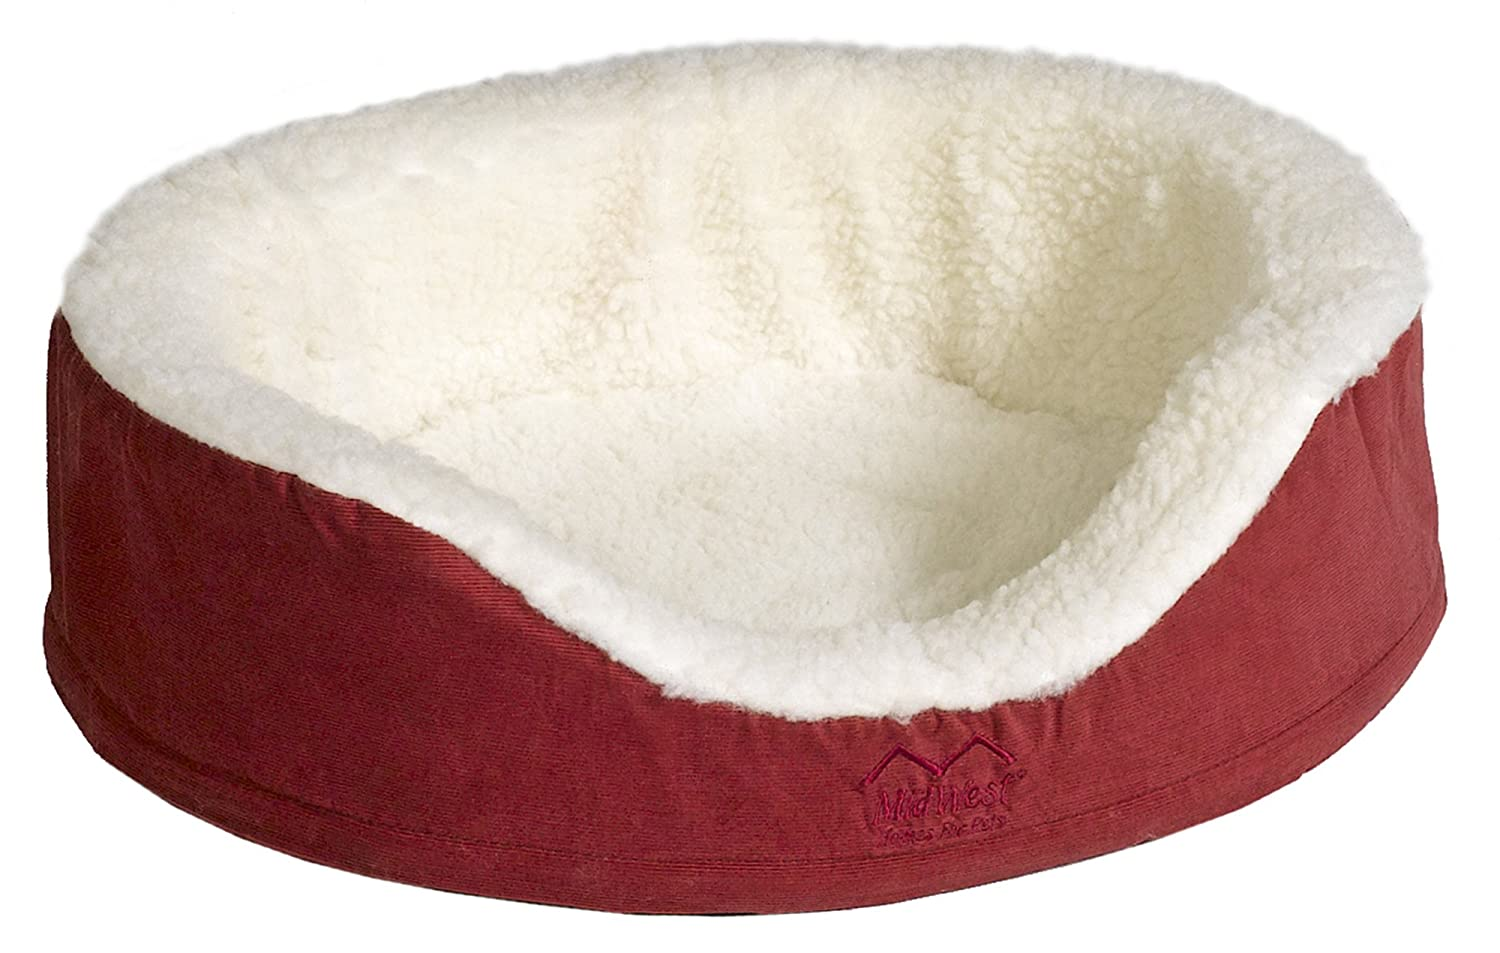 Burgundy 42  DiameterMidwest Quiet Time e'Sensuals Orthopedic Nesting Bed, 29 Diameter (pink)